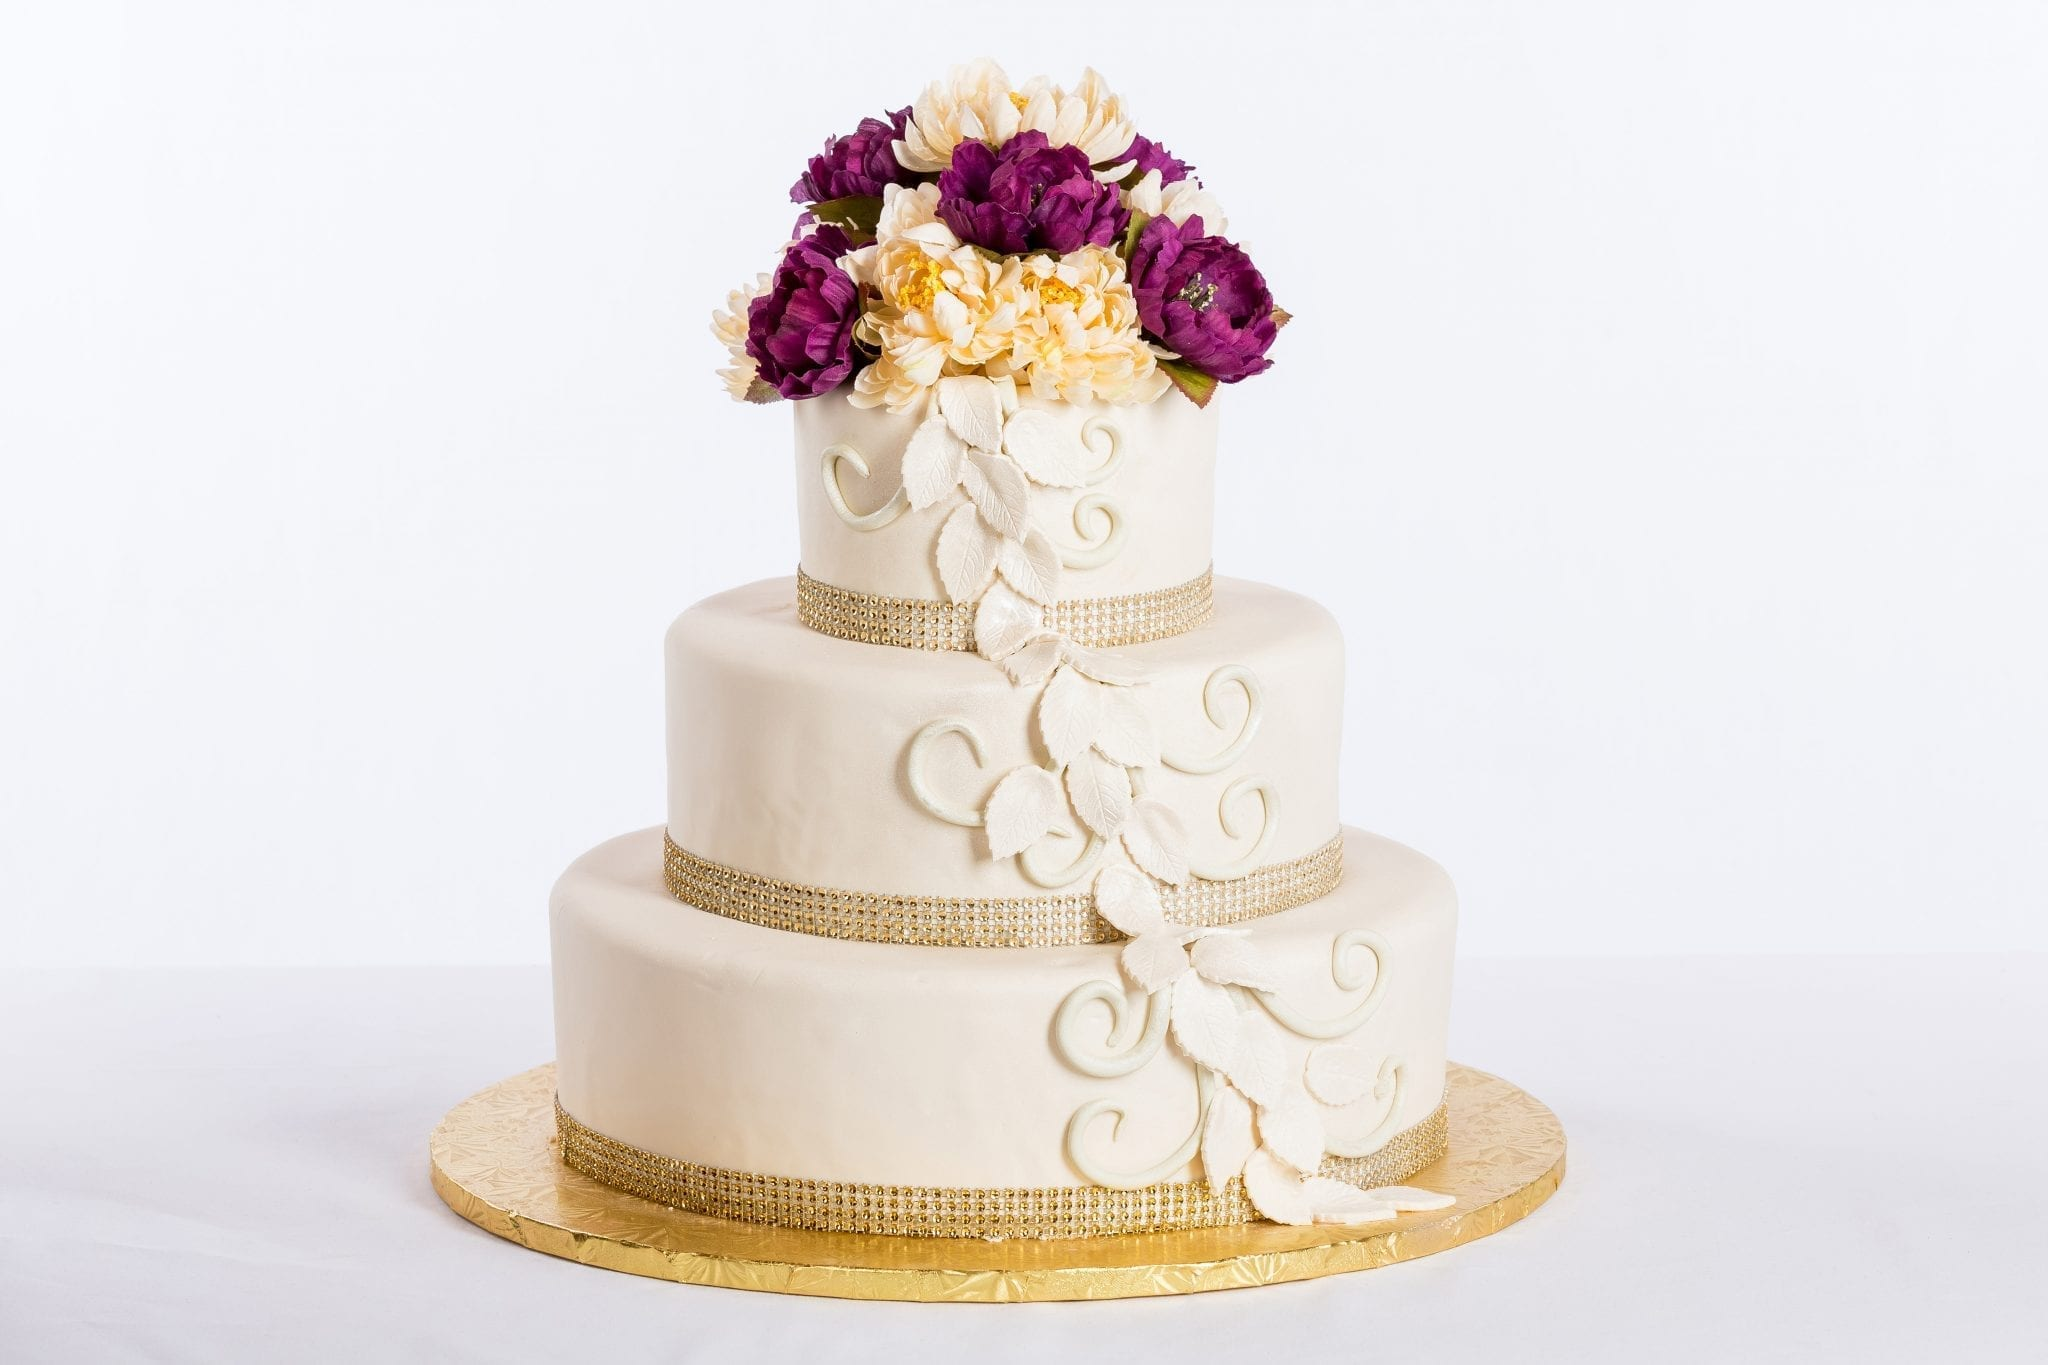 white wedding cake with gold ribbons and flowers on the side